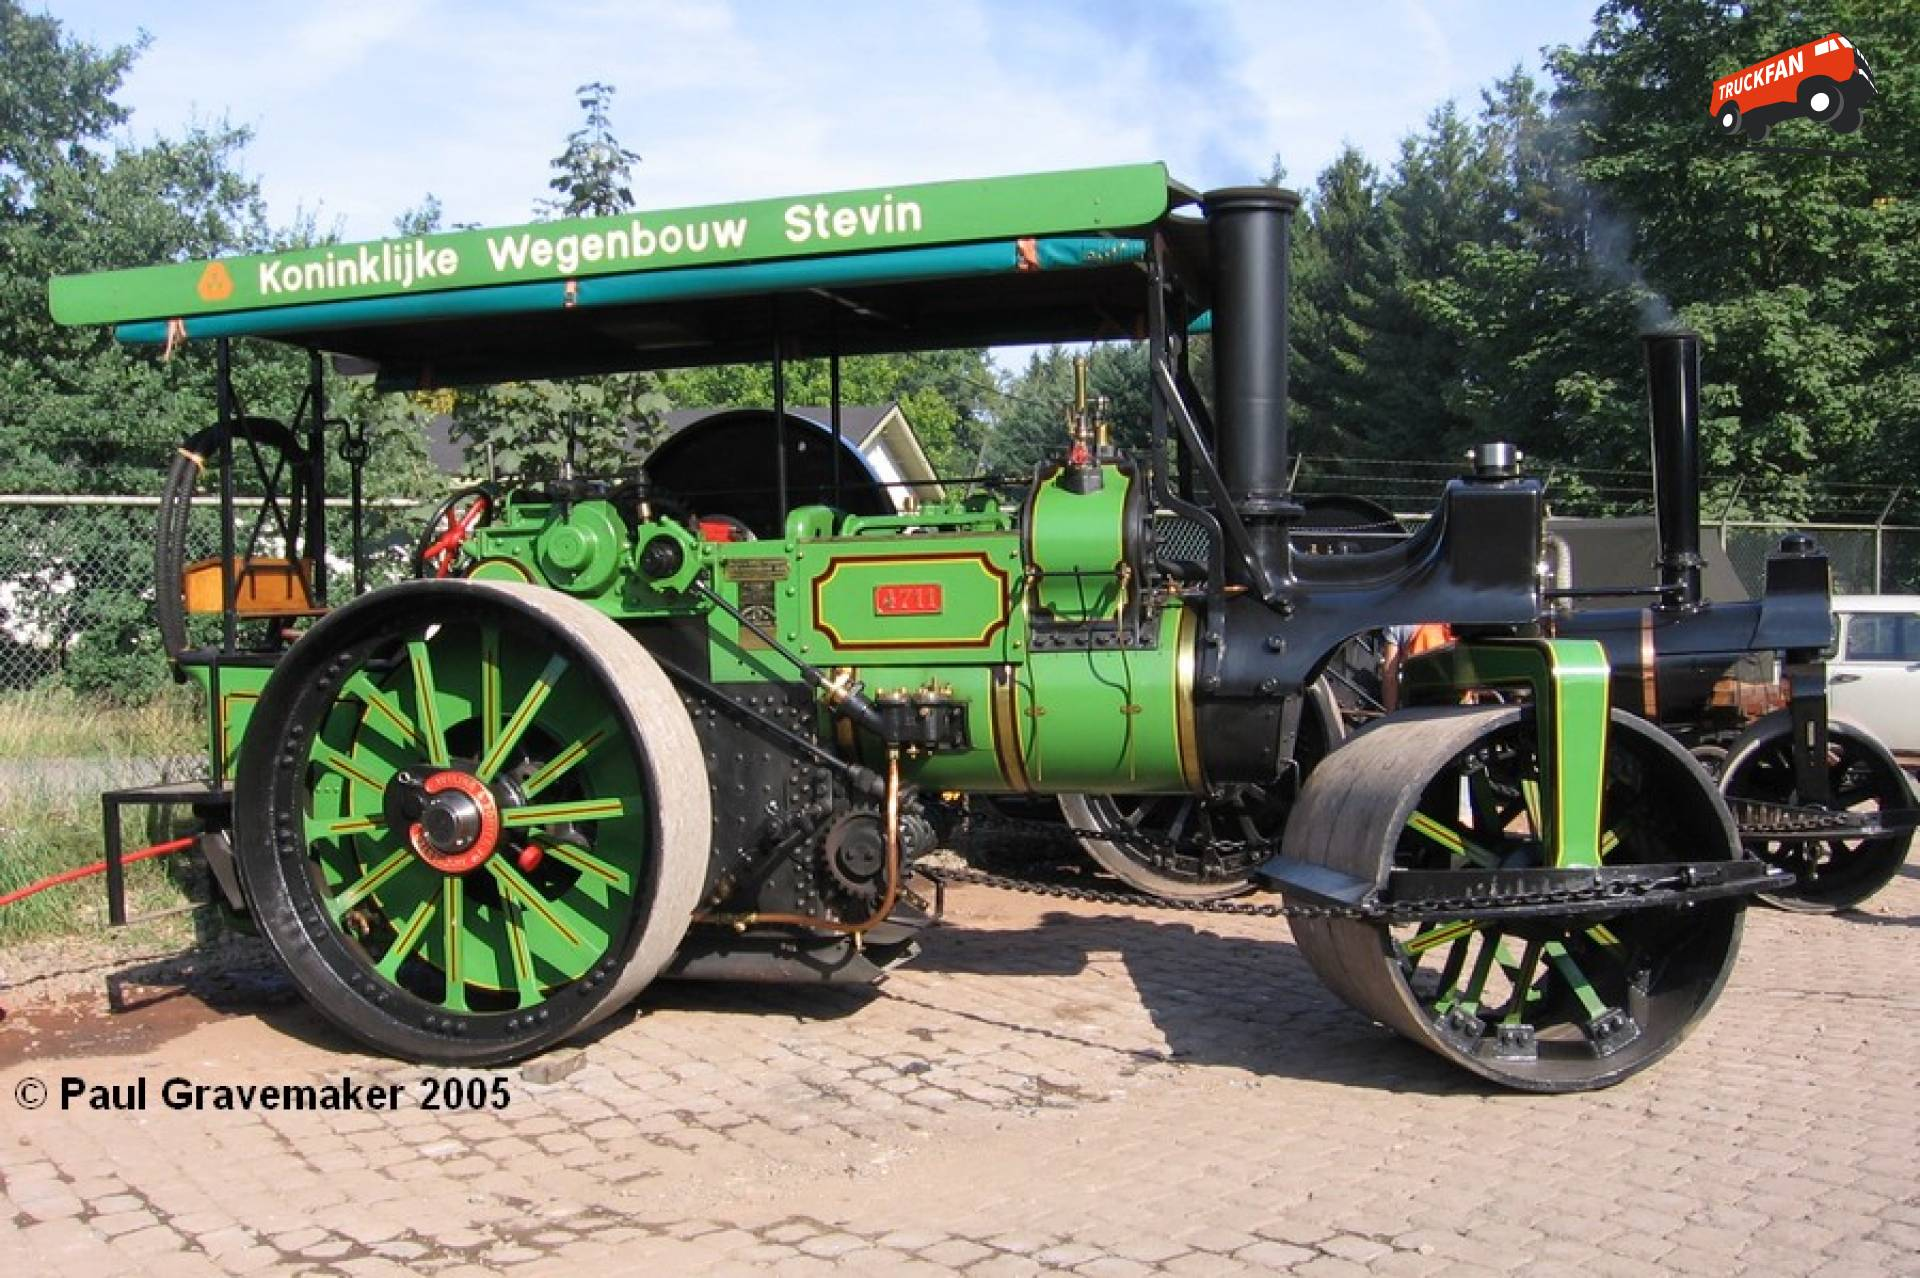 Aveling & Porter stoomwals